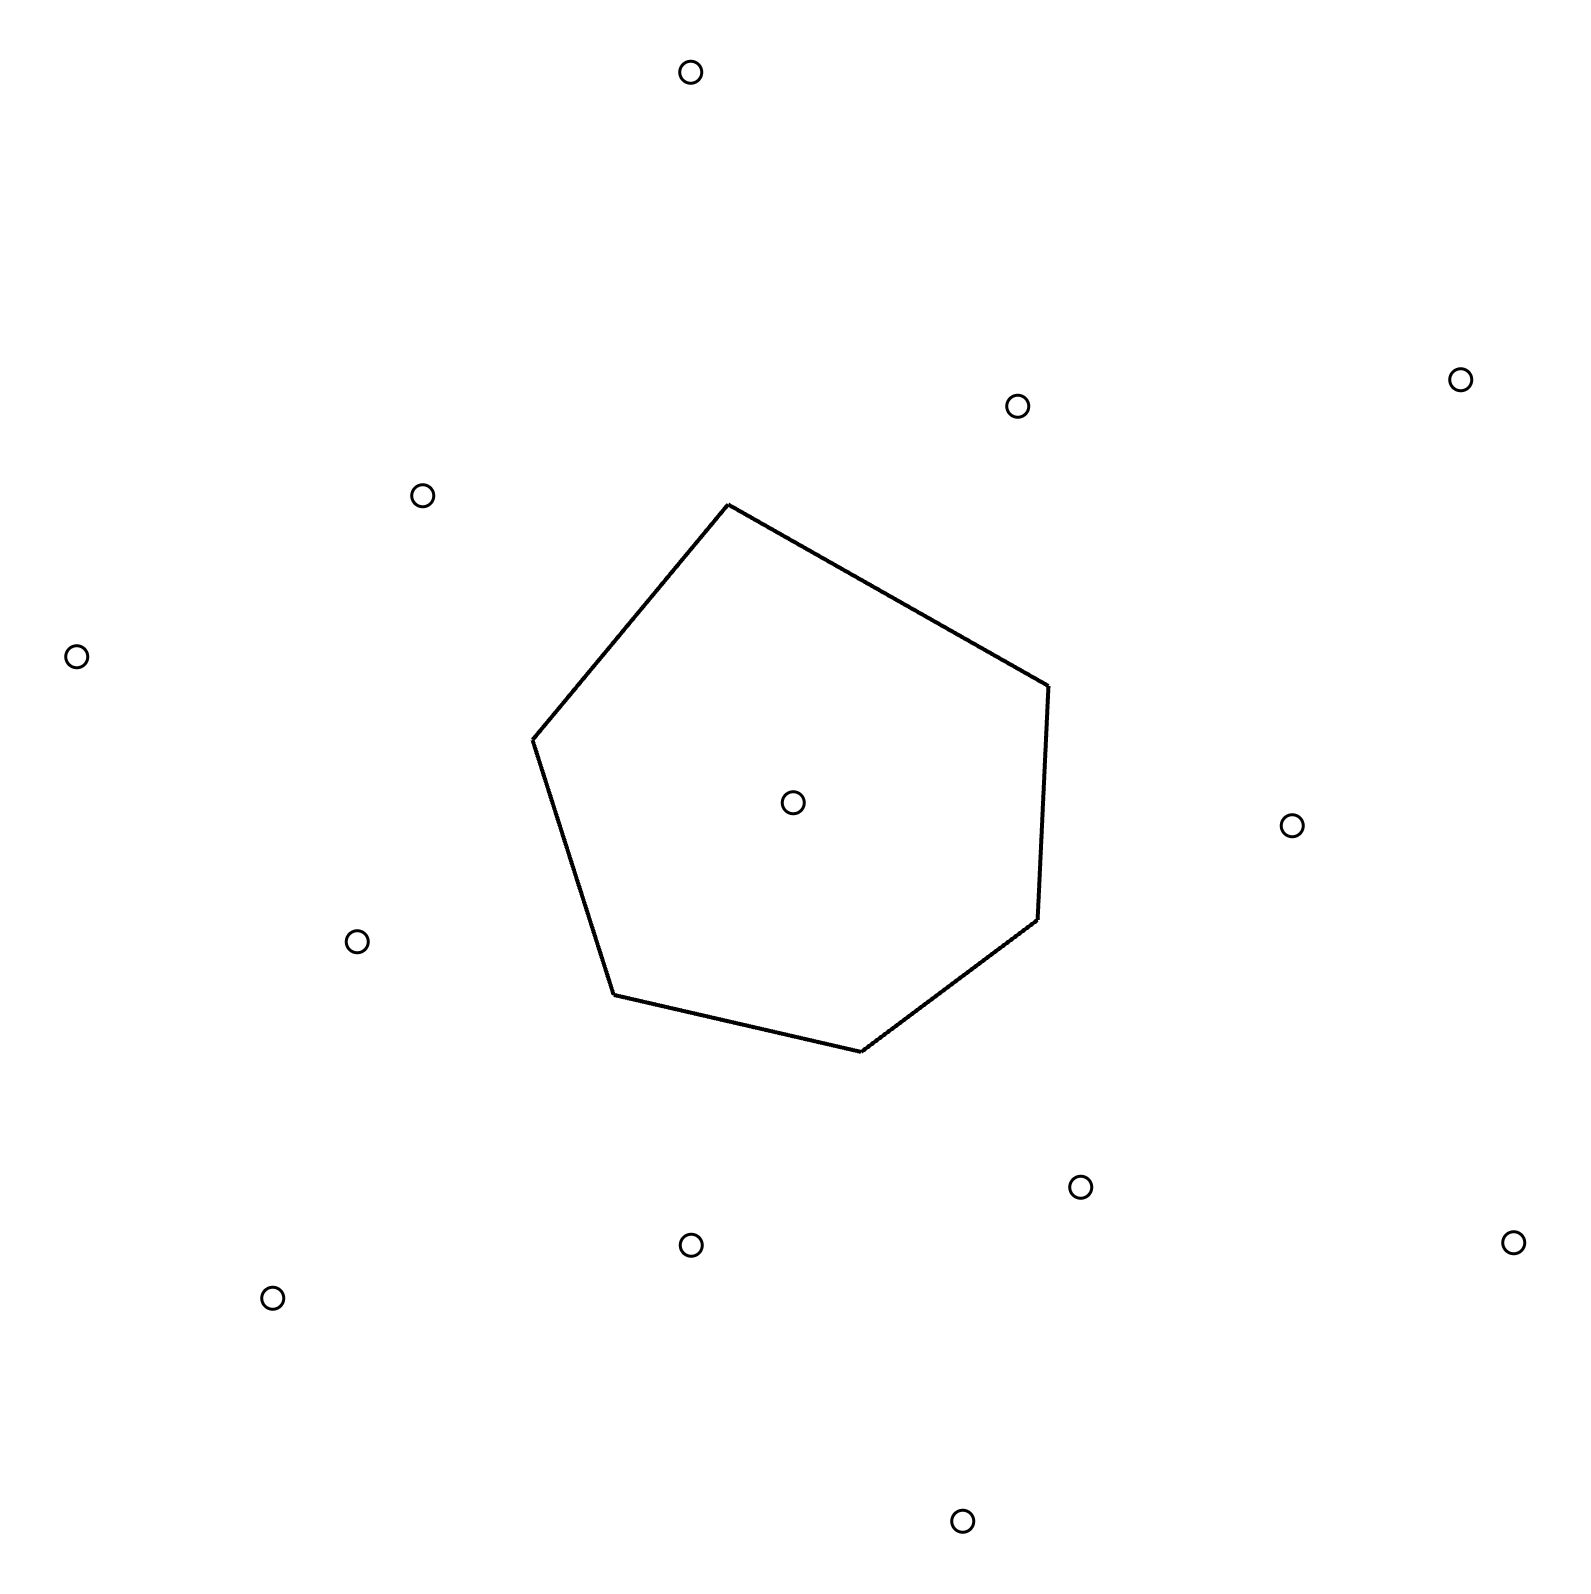 Step 7: Calculate the area of the resulting polygon.